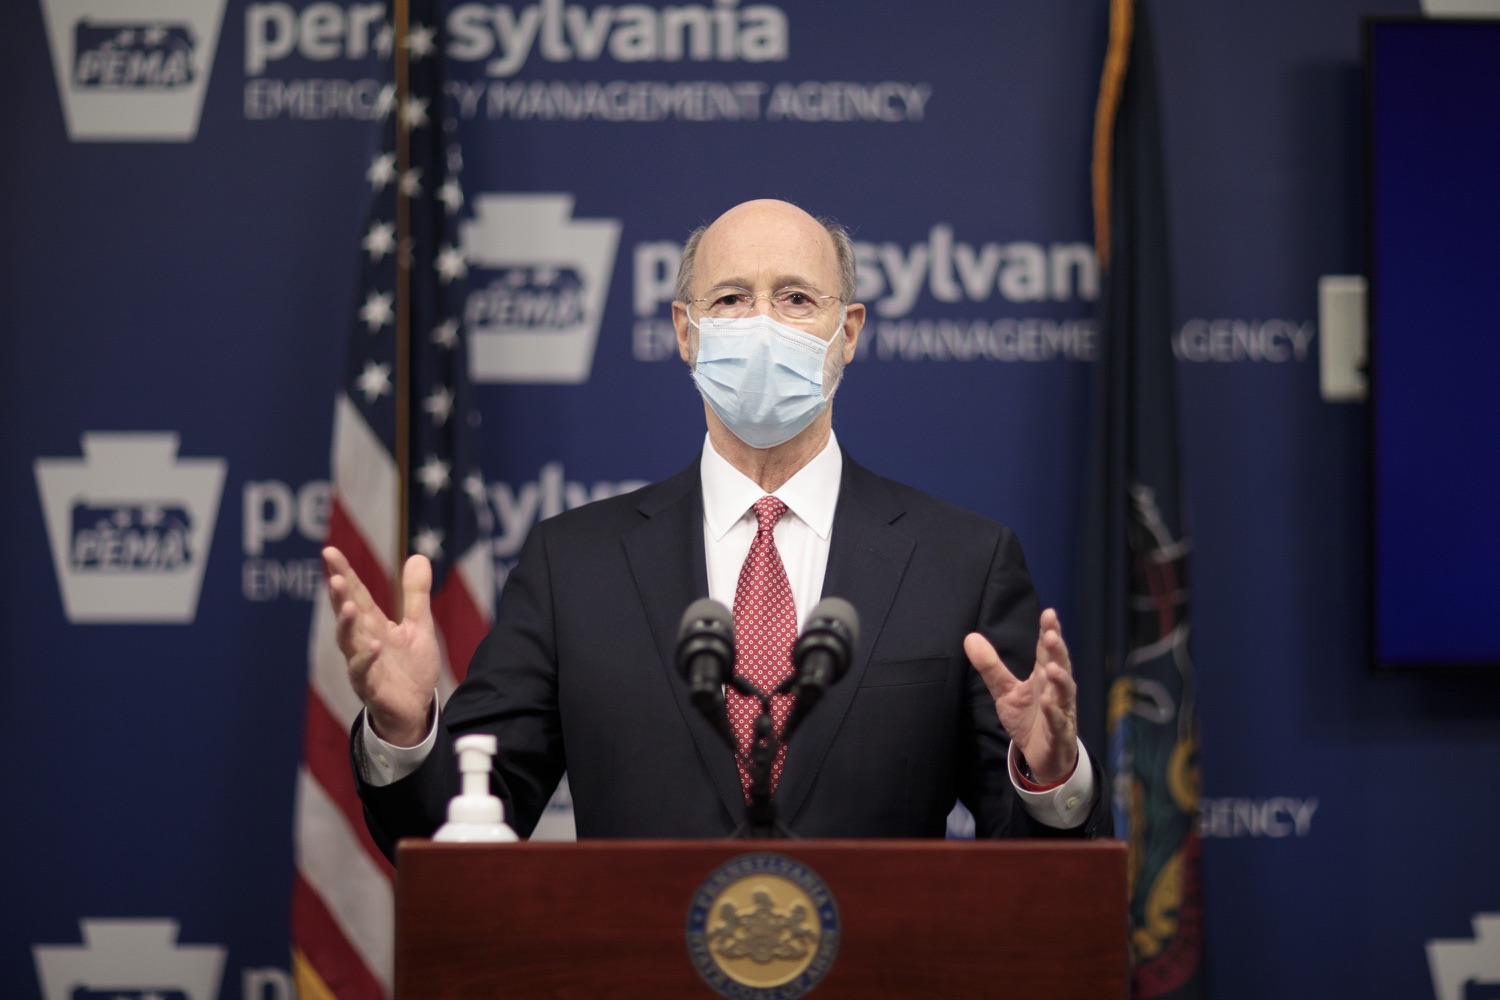 """<a href=""""https://filesource.wostreaming.net/commonwealthofpa/photo/18465_gov_electoralCollege_dz_04.jpg"""" target=""""_blank"""">⇣Download Photo<br></a>Pennsylvania Governor Tom Wolf speaking at the press conference.  With Congress preparing to count Electoral College votes today, Governor Tom Wolf was joined by Secretary of State Kathy Boockvar and Philadelphia City Commissioner Al Schmidt to emphasize that Pennsylvania had a free, fair and secure election. All efforts by Congressional Republicans to overthrow the election results and subvert the will of the voters are disgraceful and must be rejected. Harrisburg, PA  January 6, 2021"""